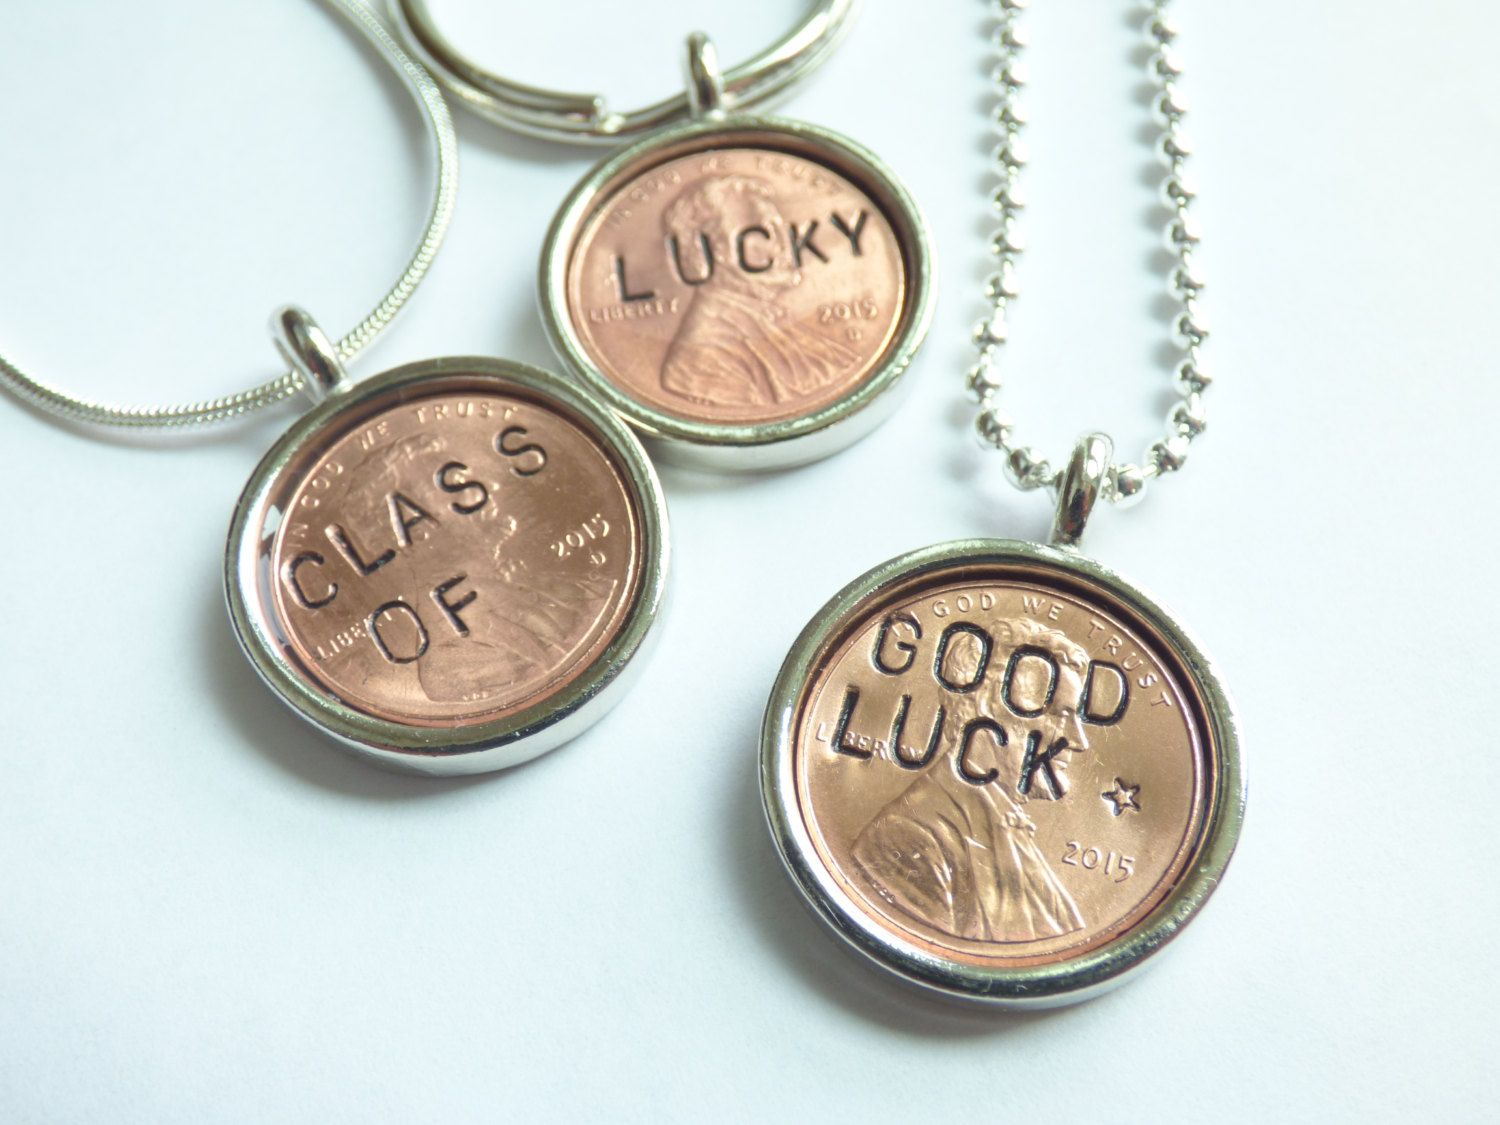 2015 Custom Year Lucky Penny Key Chain Necklace Unisex Copper Stamped Word Luck Graduation Recycled Money Repurposed Coin Upcycled Materials by HeidiKindFinds on Etsy